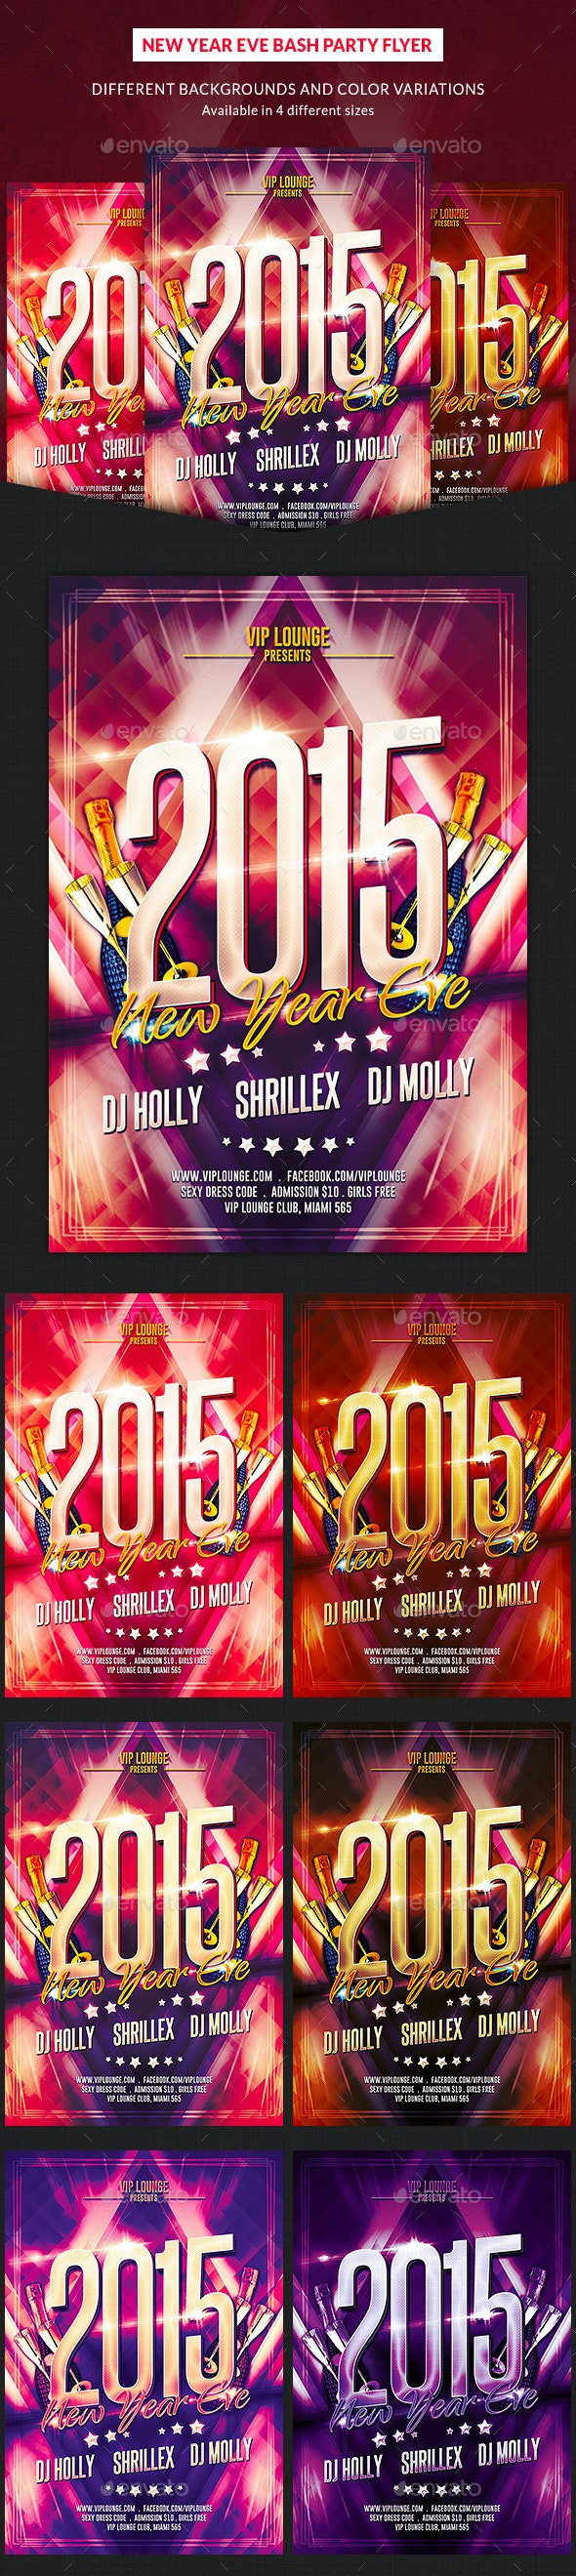 New Year Eve Bash Party Flyer - Clubs & Parties Events